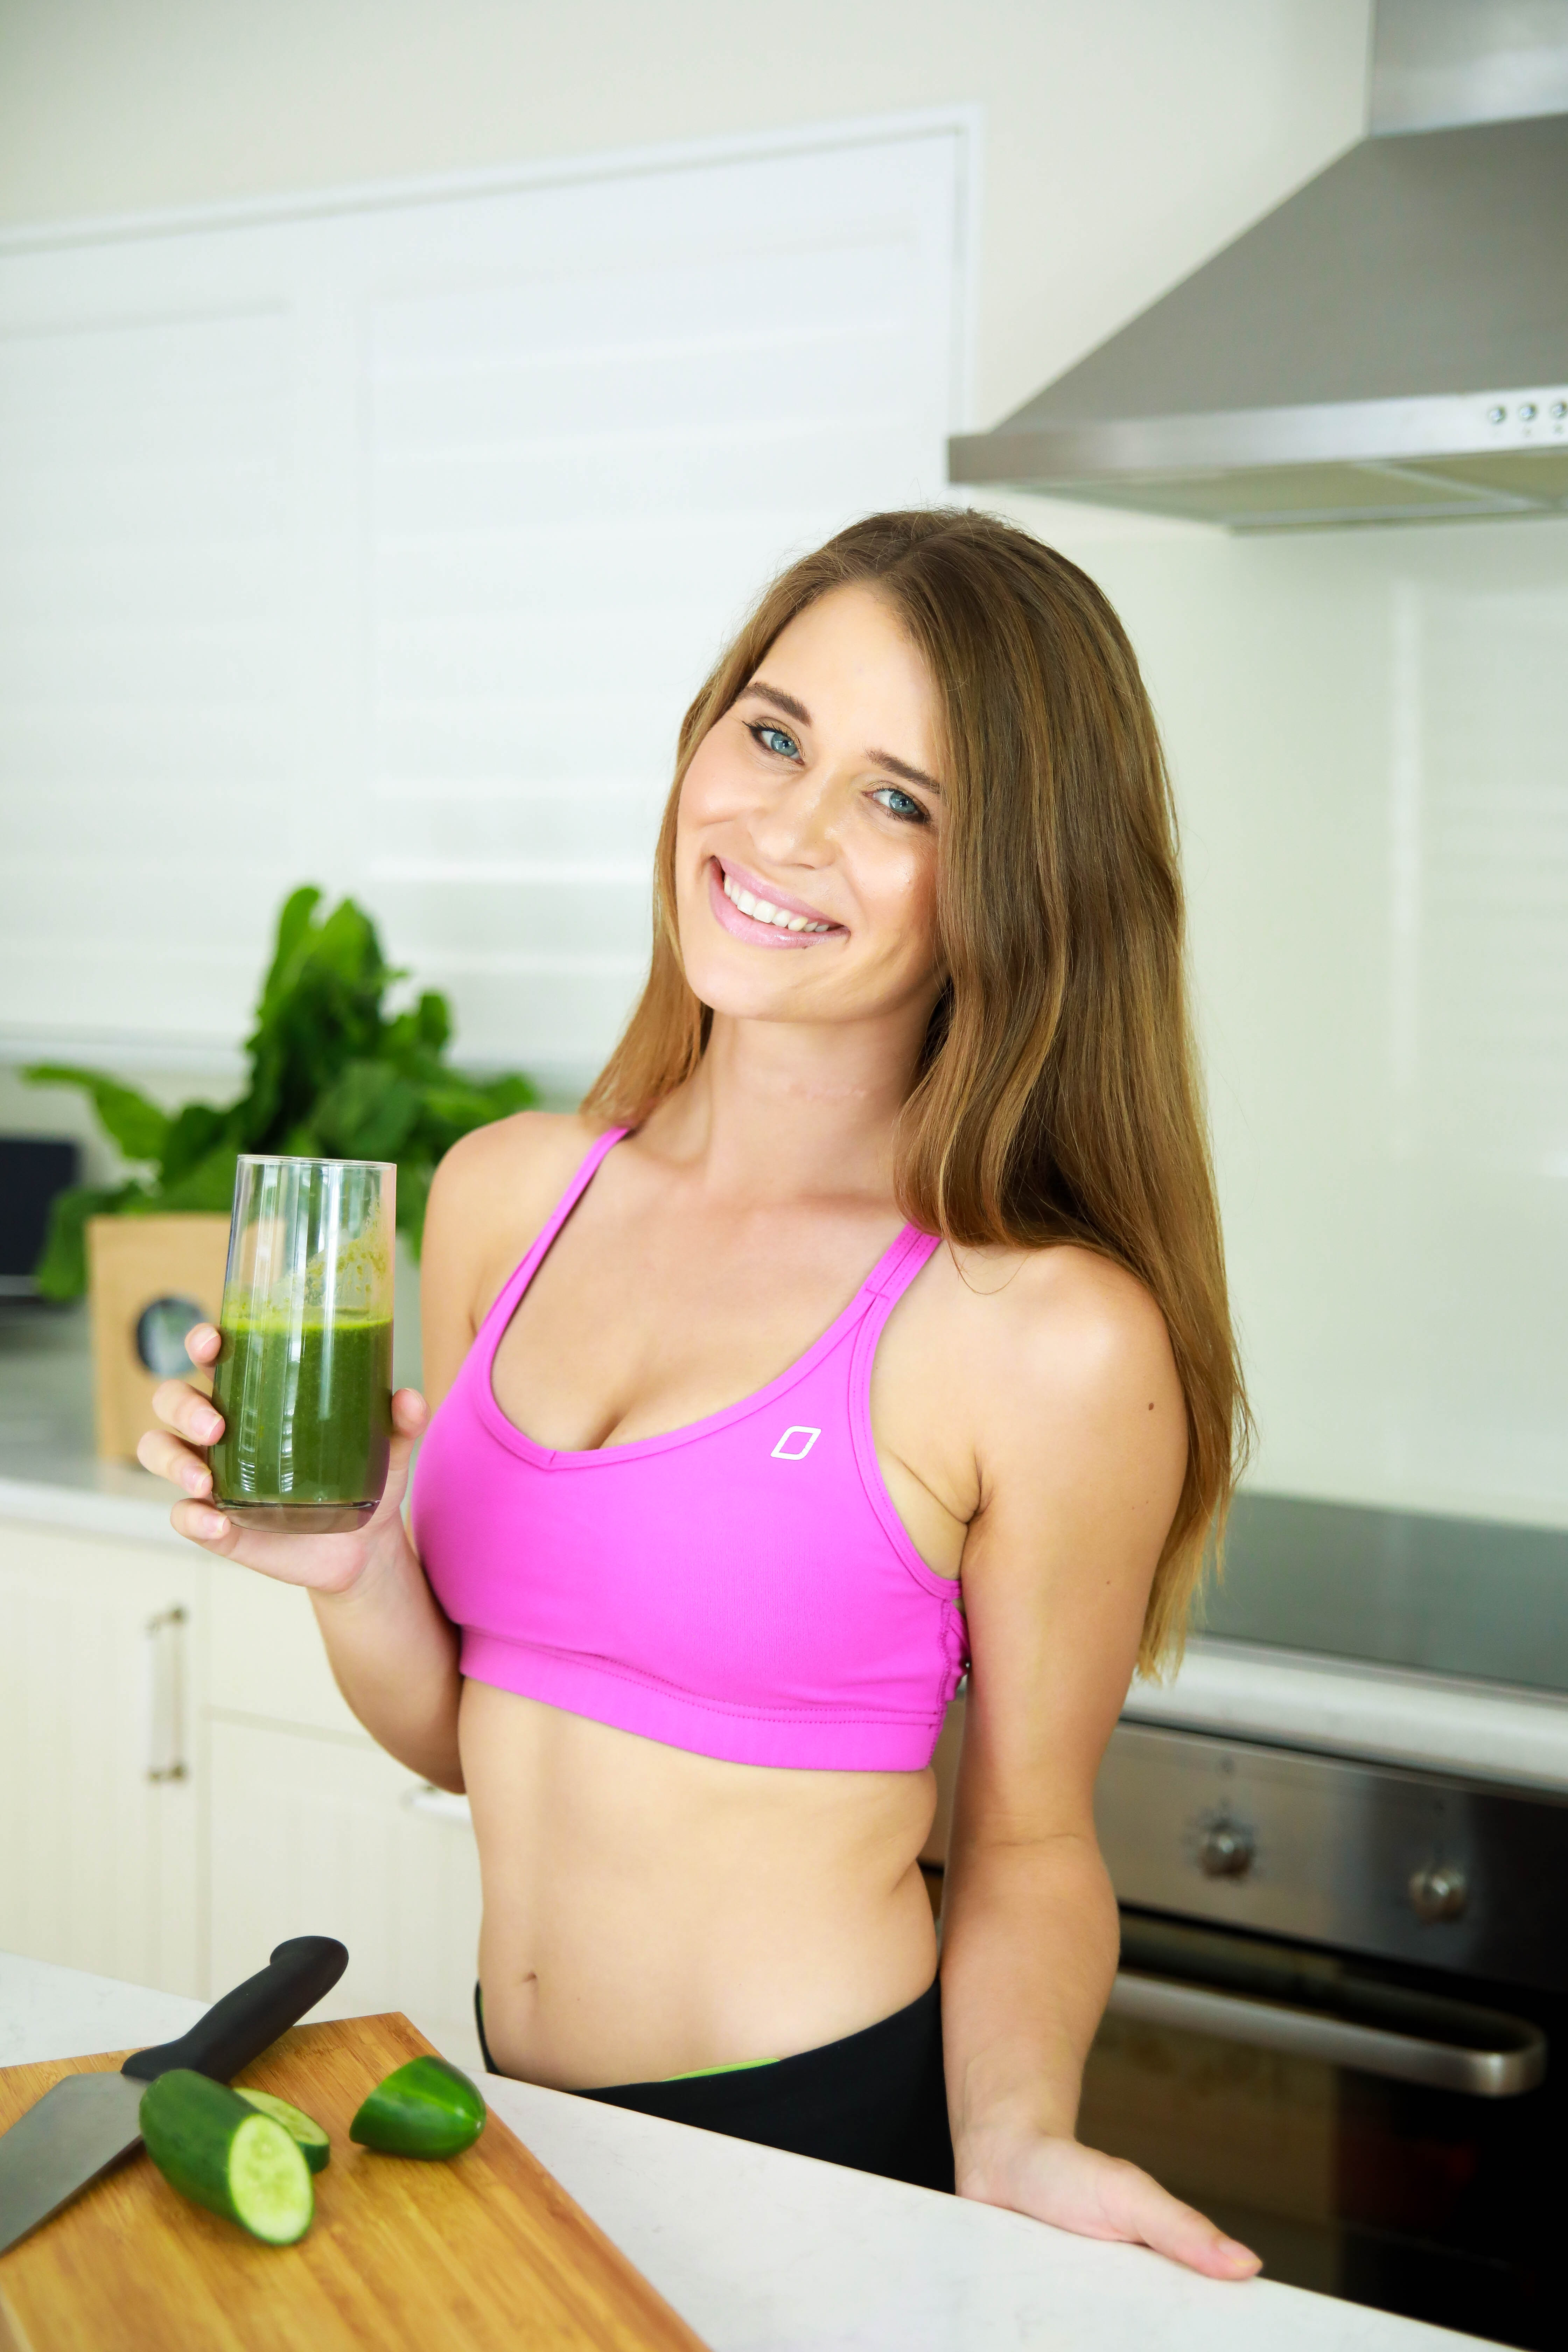 amy rose hancock drinking green smoothie